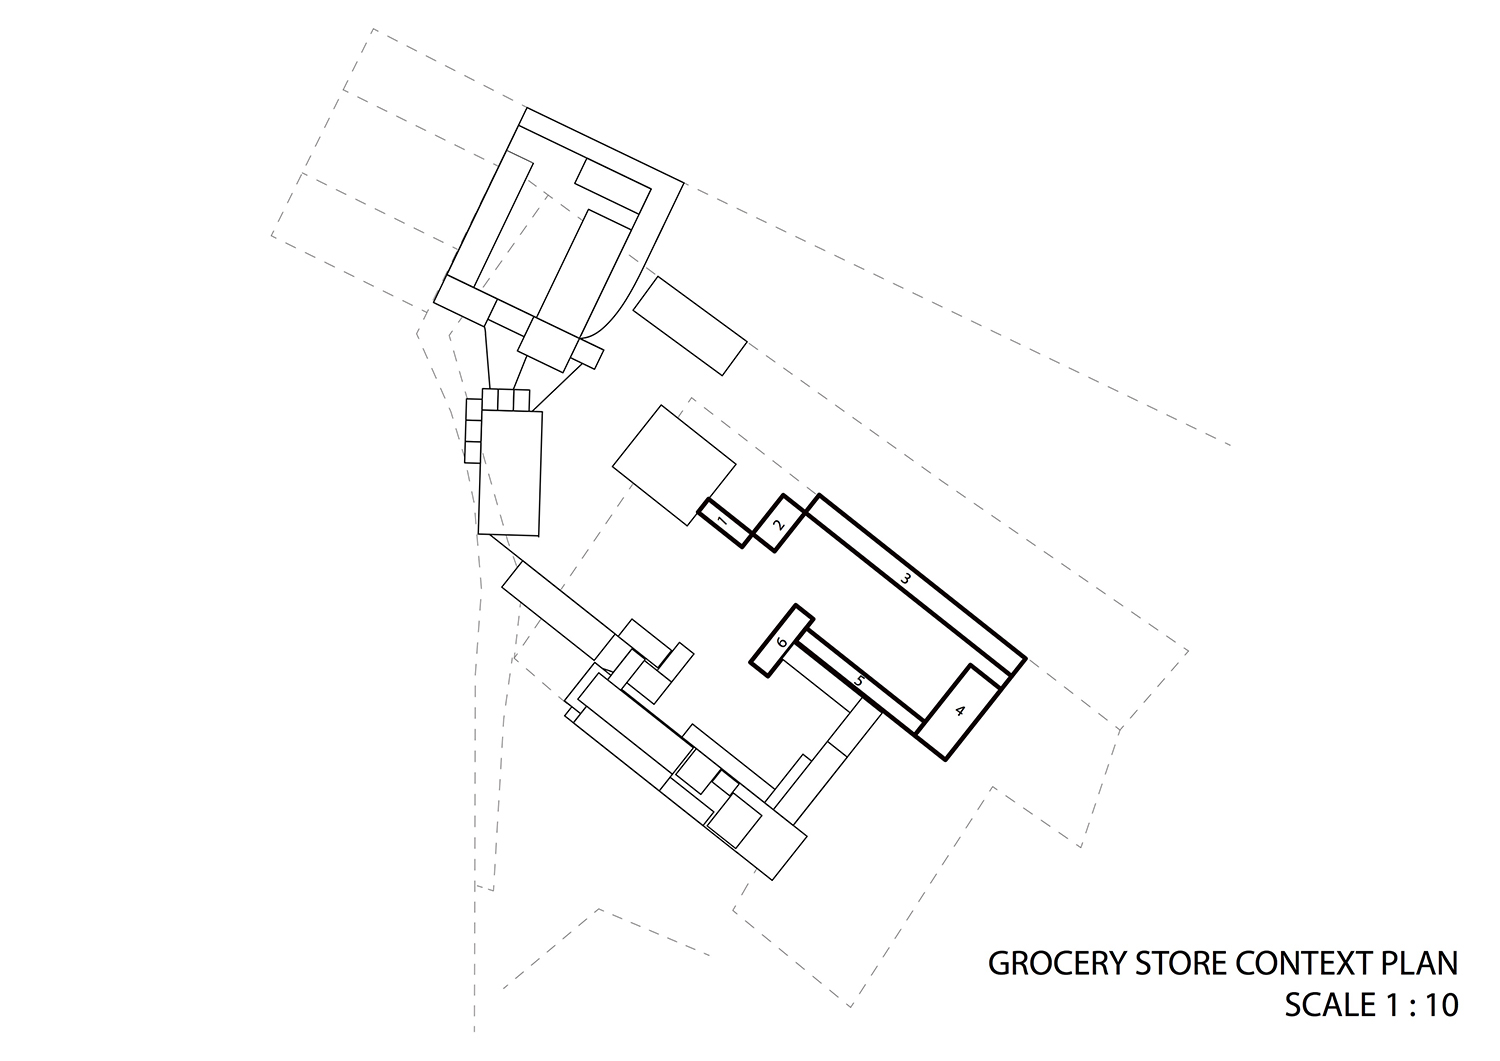 Grocery store context plan